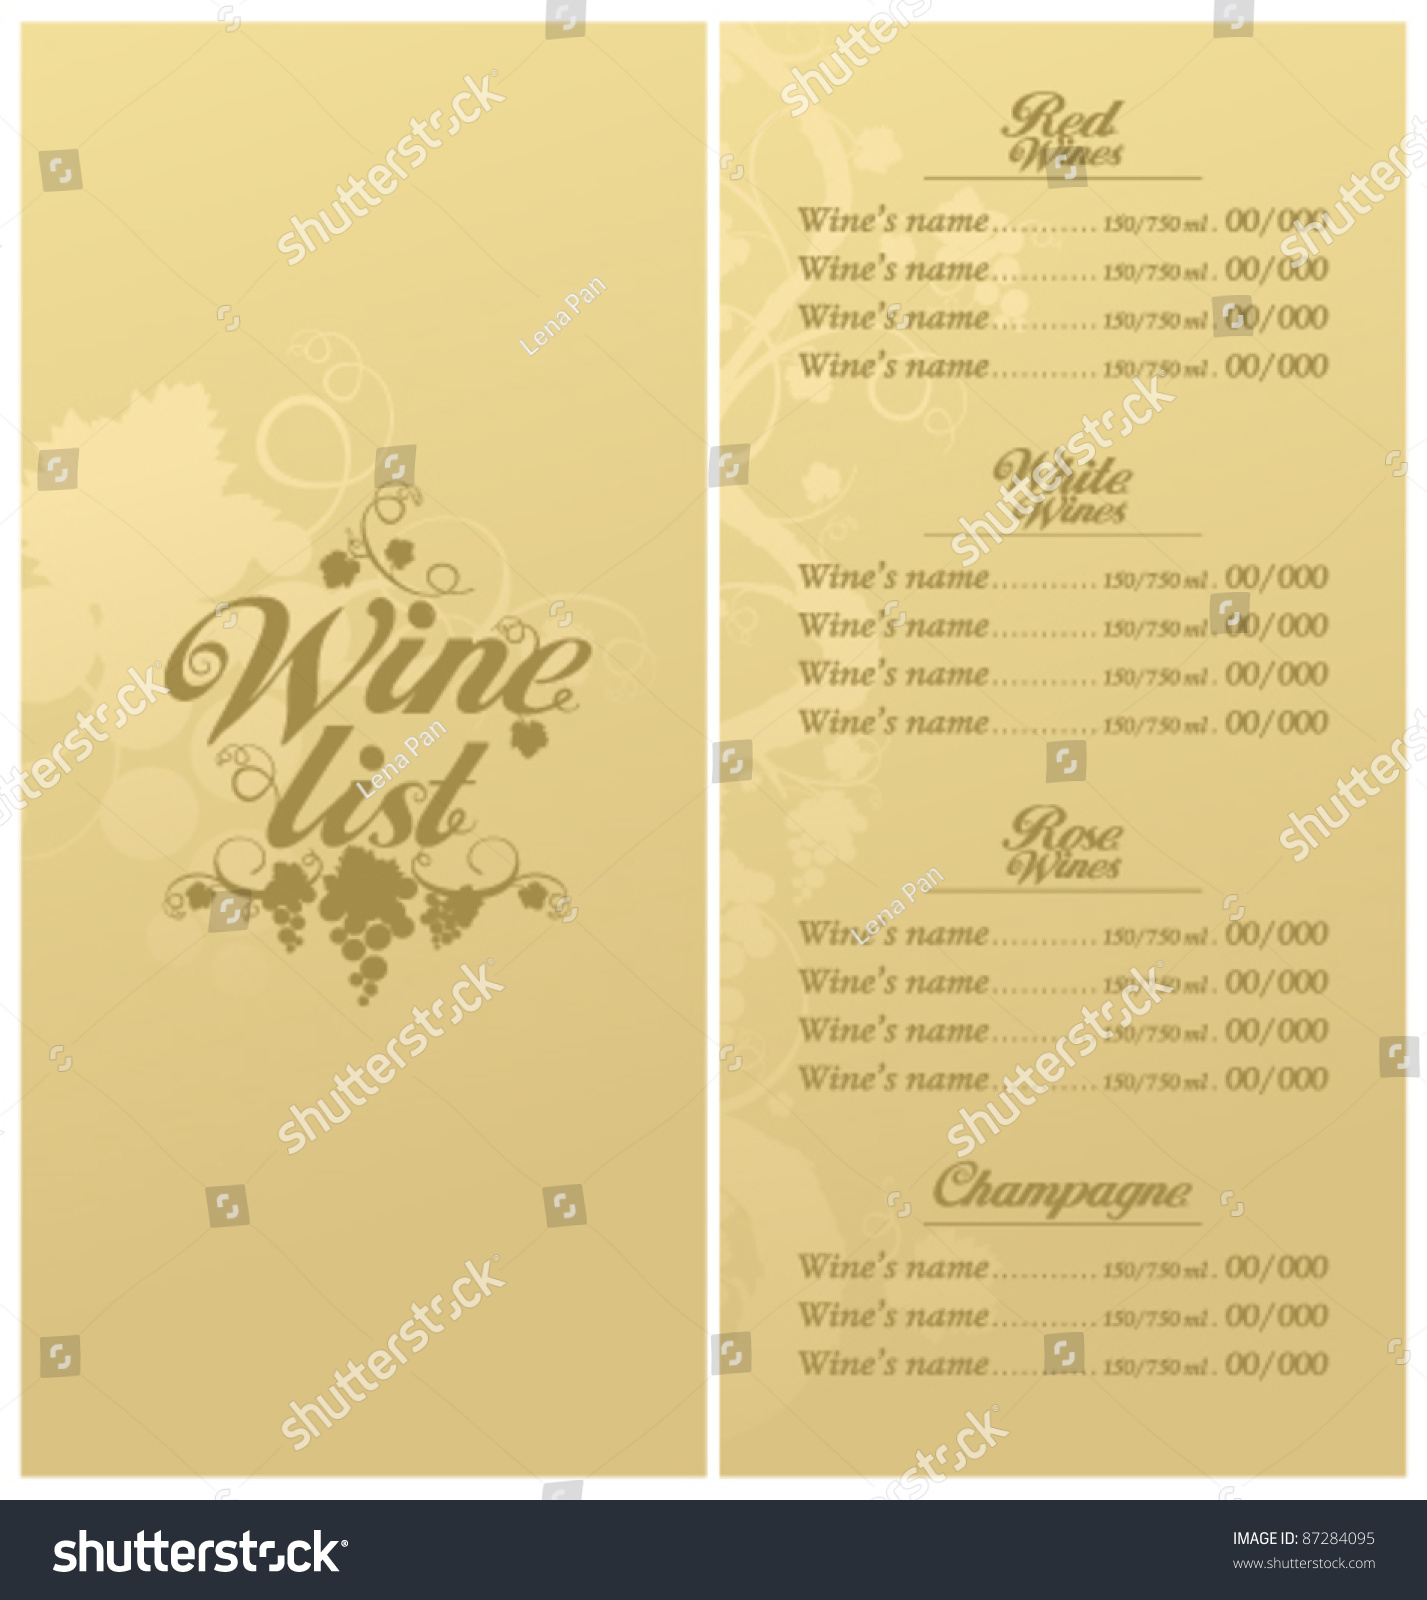 wine list menu card design template stock vector 87284095 shutterstock. Black Bedroom Furniture Sets. Home Design Ideas